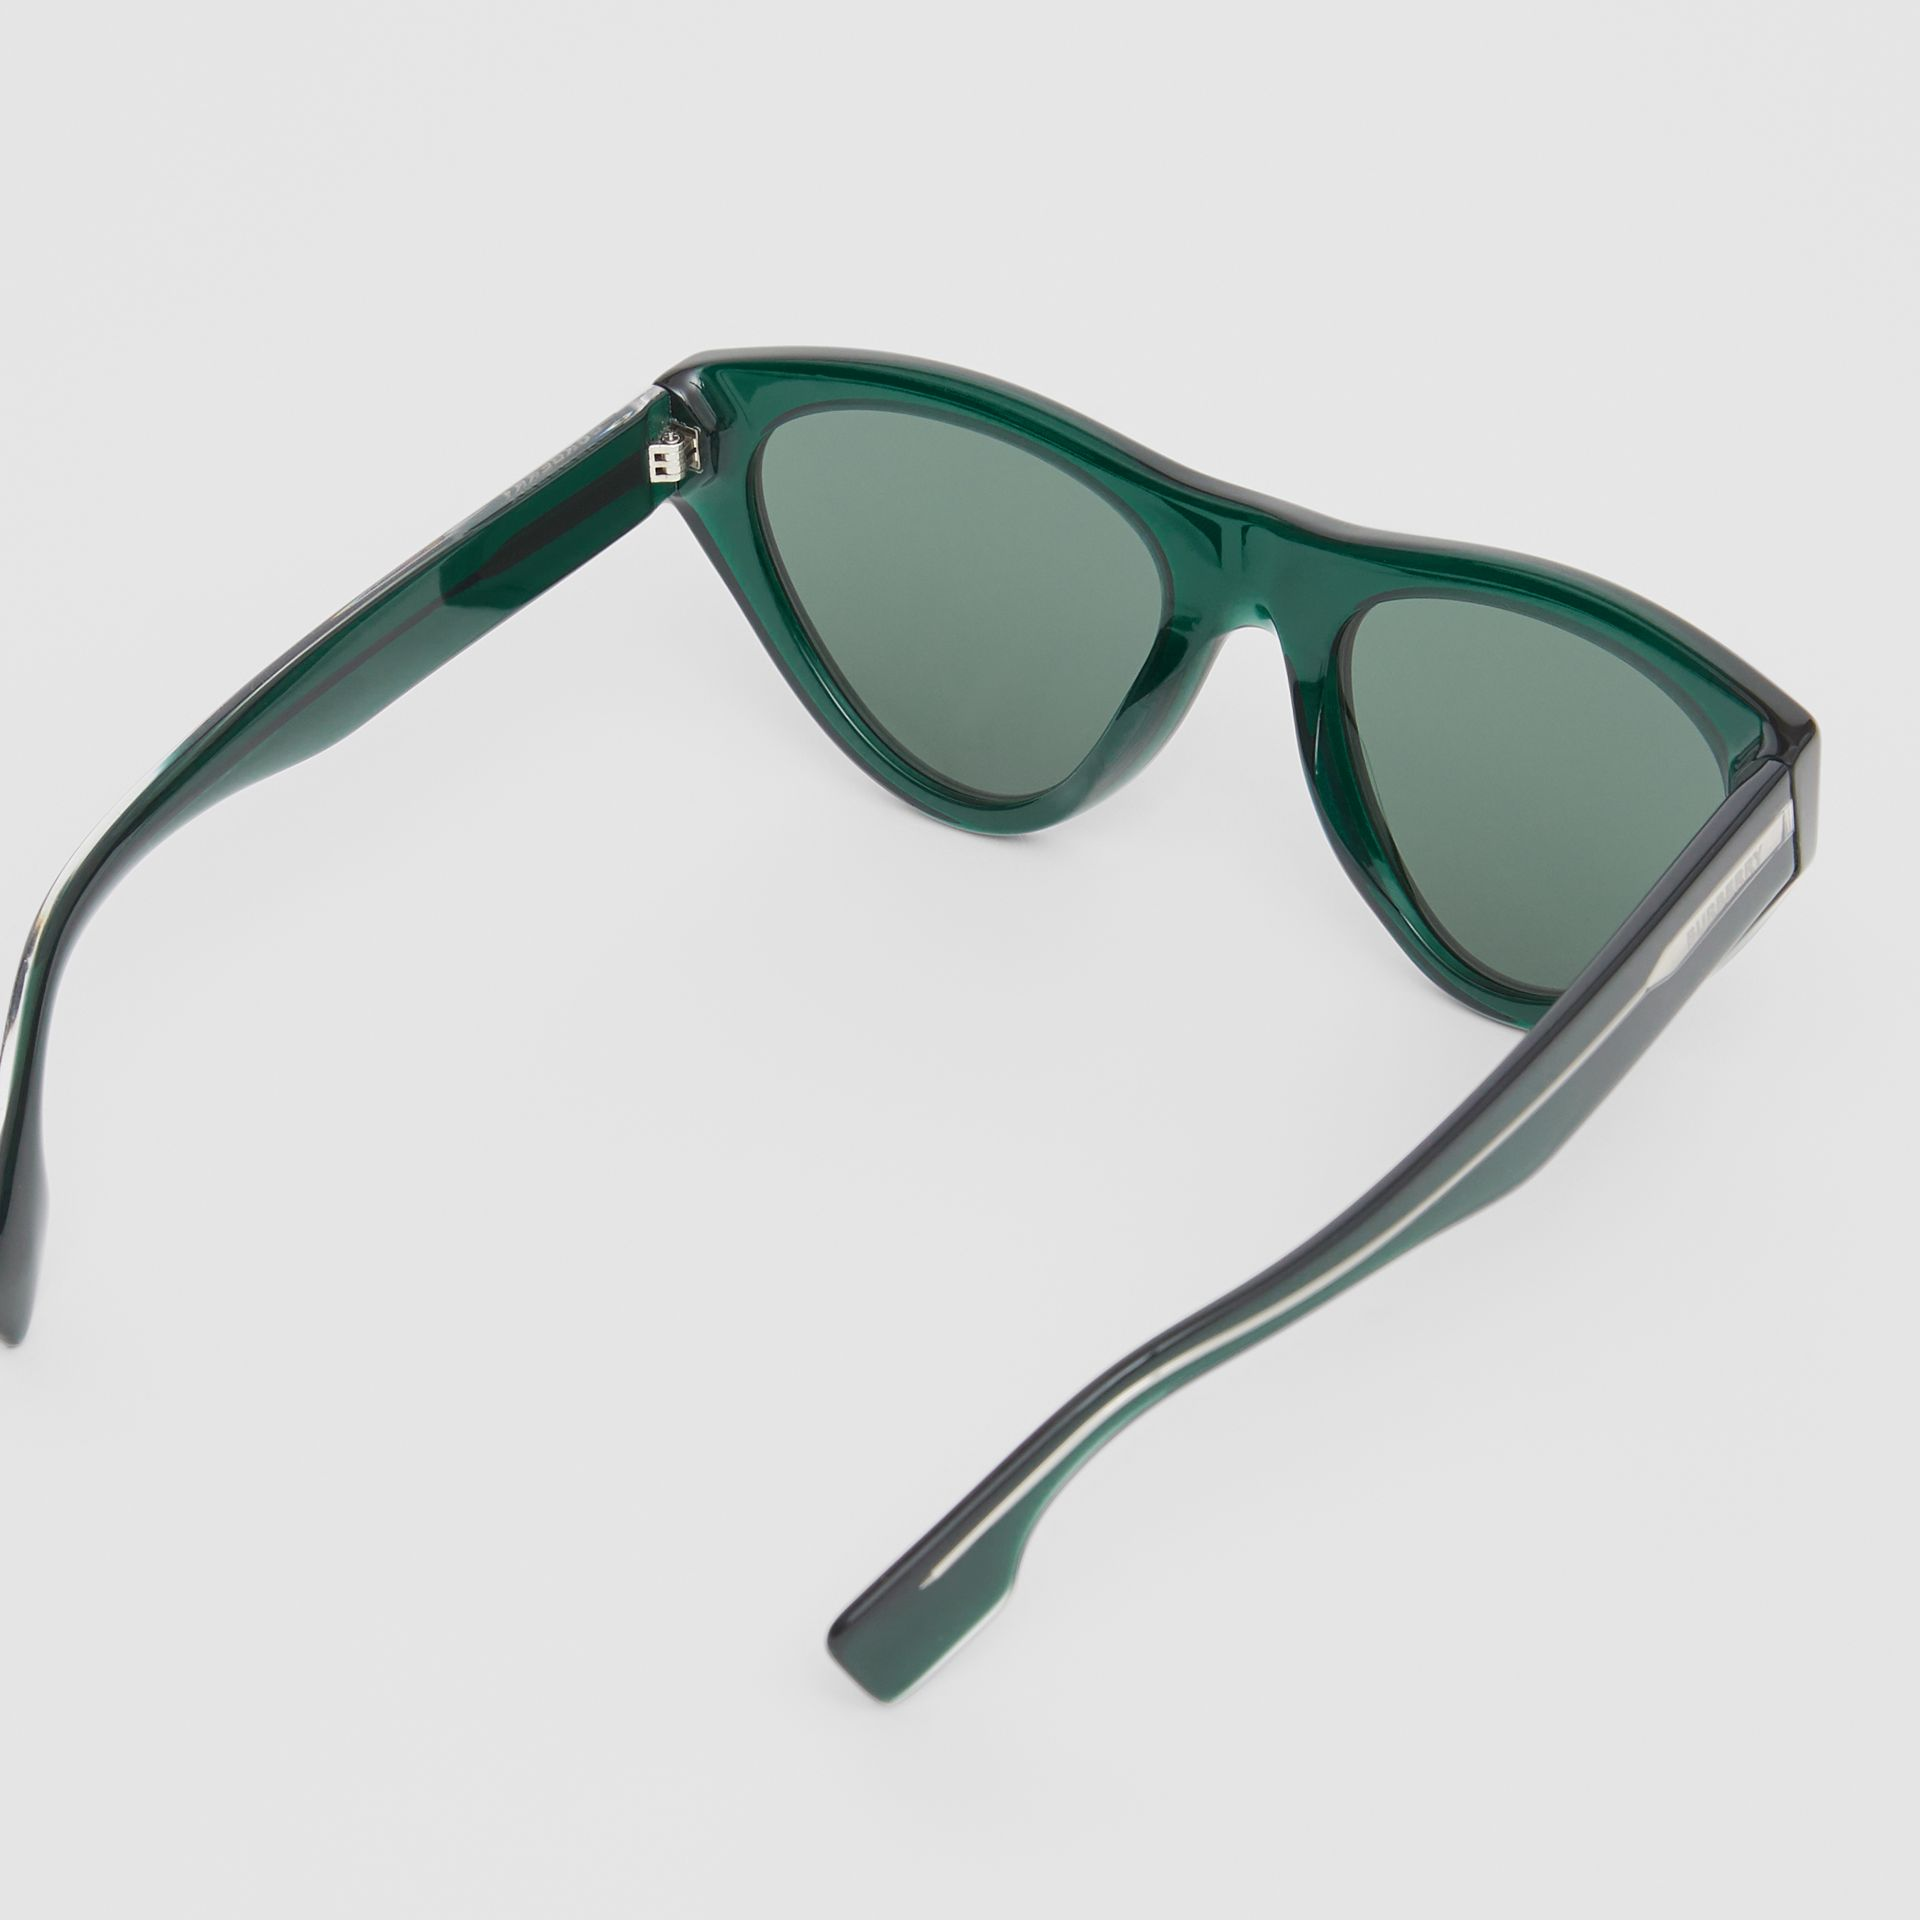 Triangular Frame Sunglasses in Green - Women | Burberry - gallery image 3